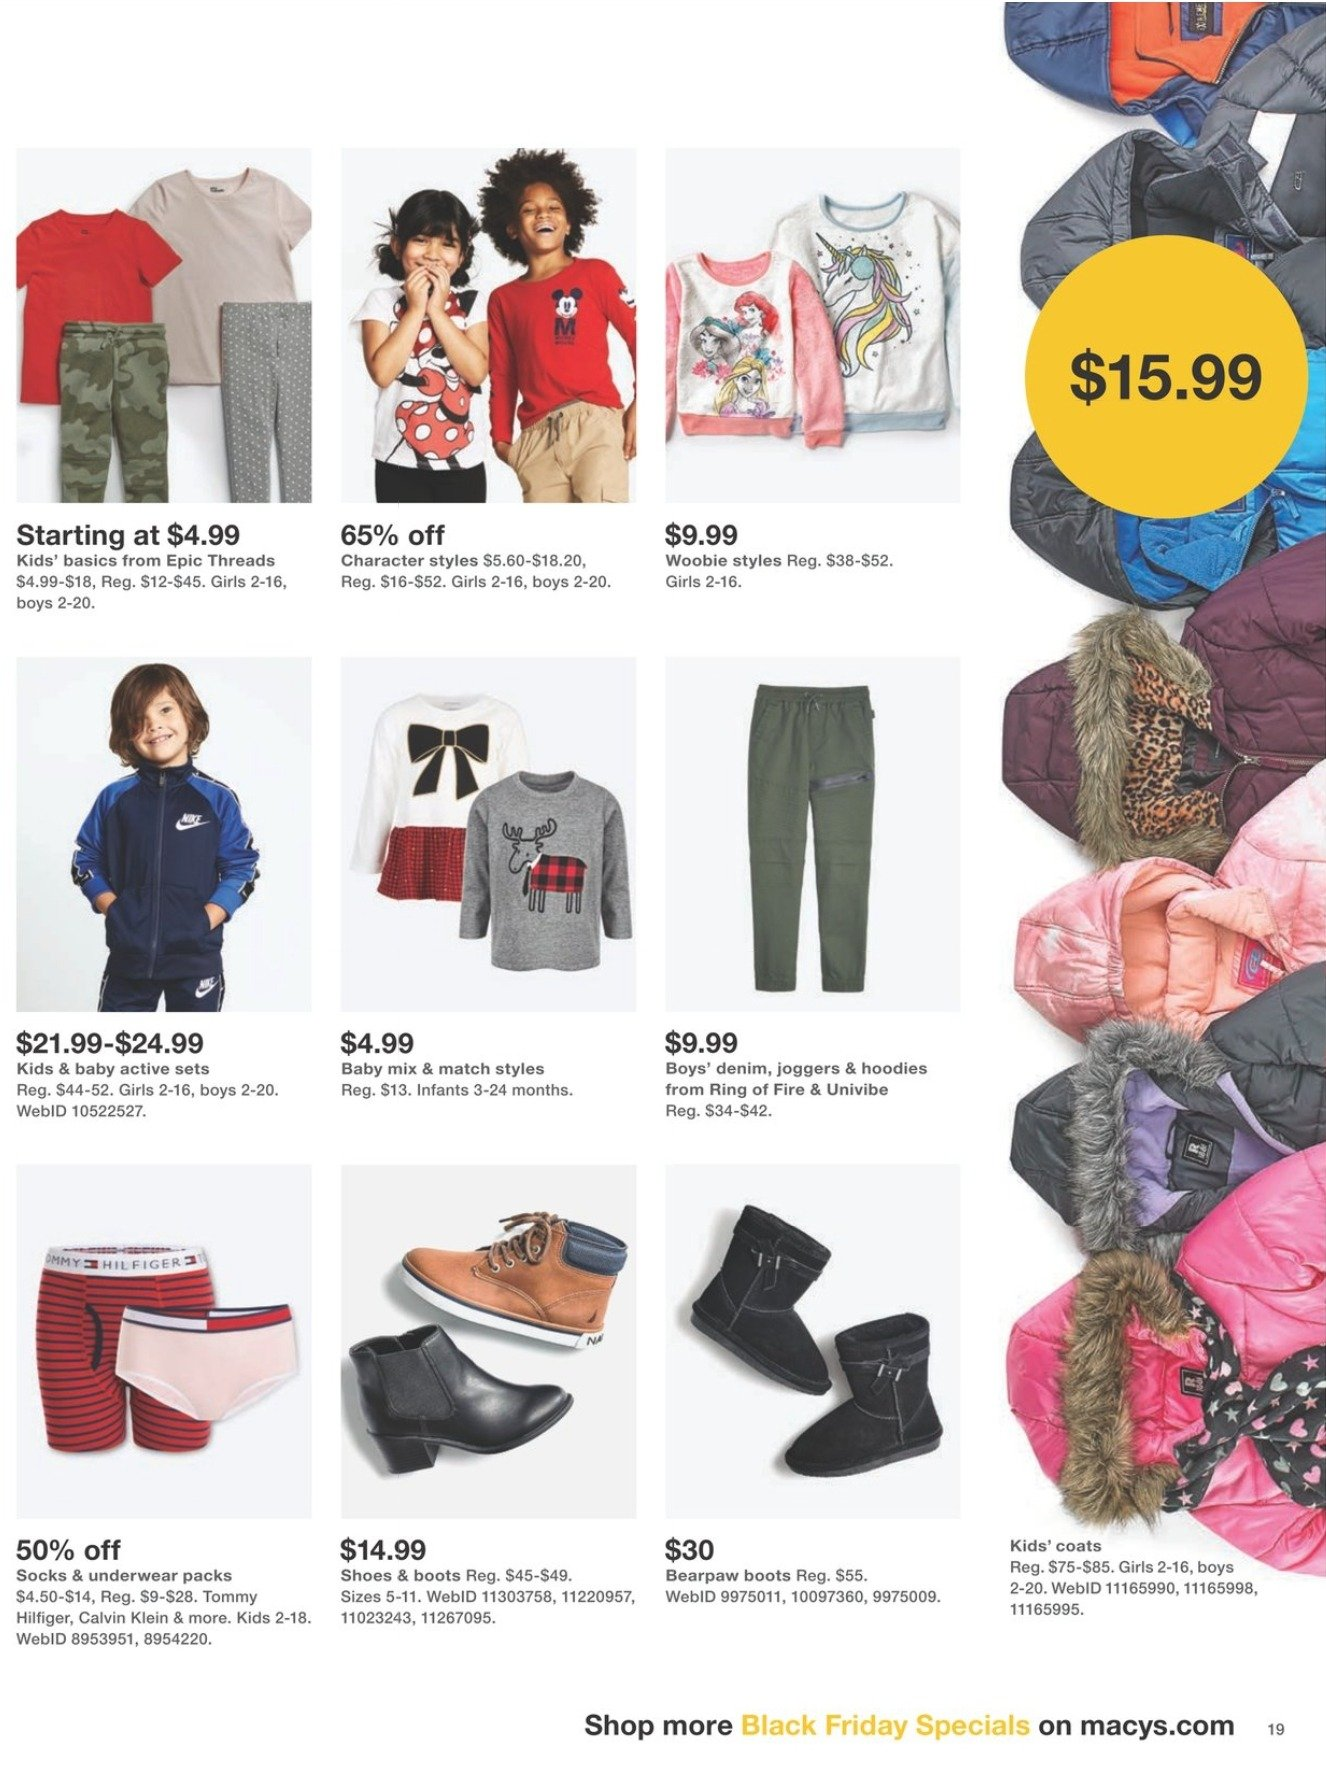 Macy's Black Friday 2020 Page 19